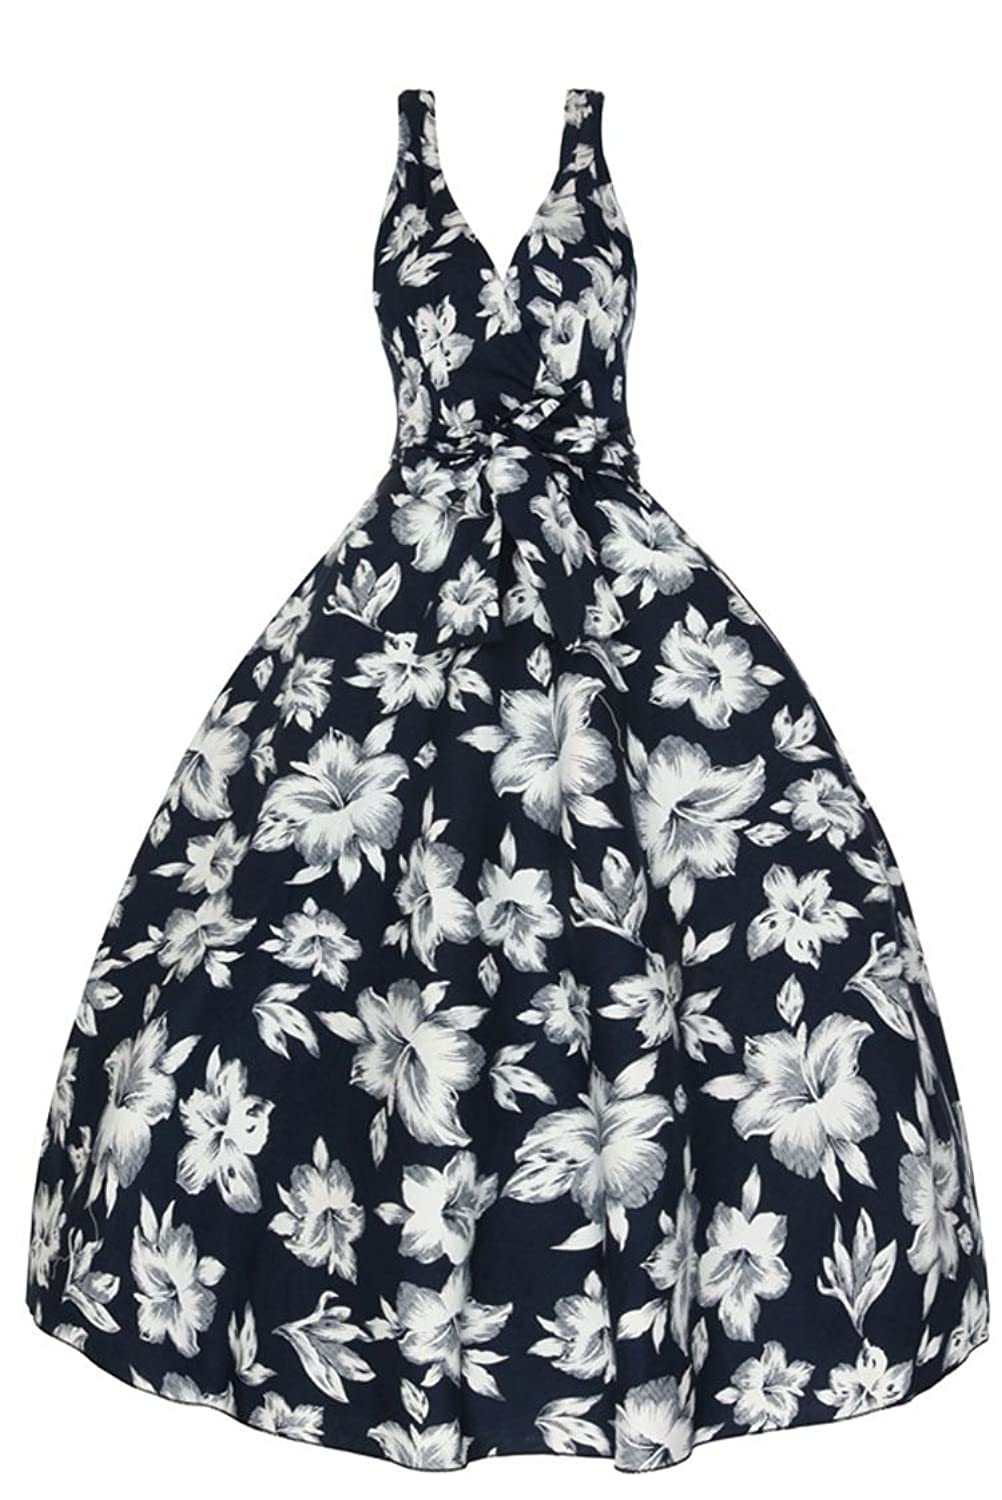 Ladies 1950's Retro Vintage Swing Party Floral Party Swing Dress